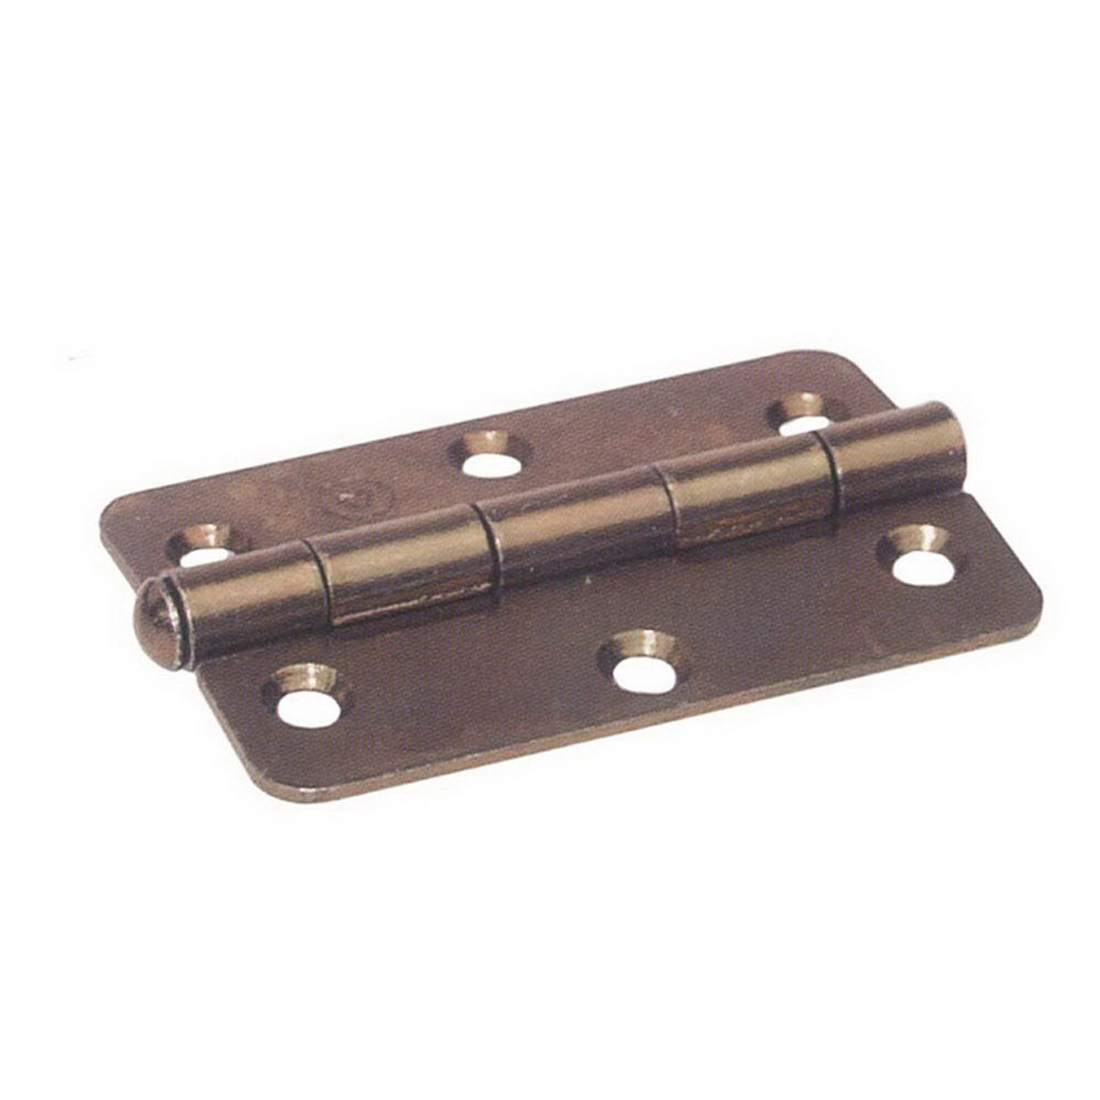 60 x 90mm Loose Pin Narrow Small Radius Butt Hinge Florentine Bronze